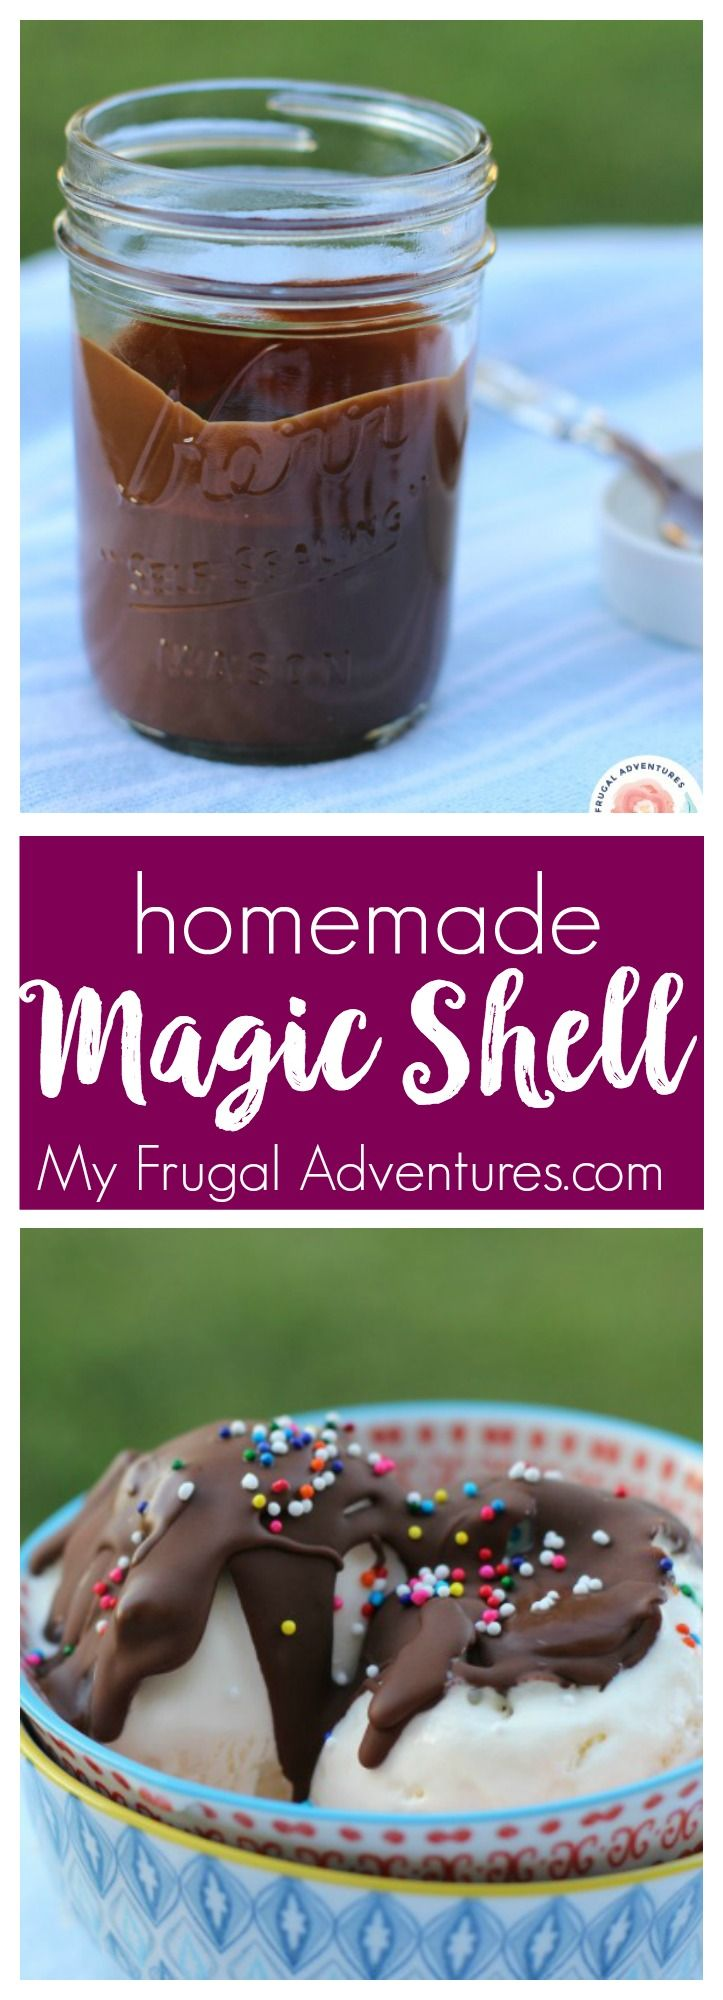 Super simple homemade magic shell recipe.  Just 2 minutes to make and unbelievably good!